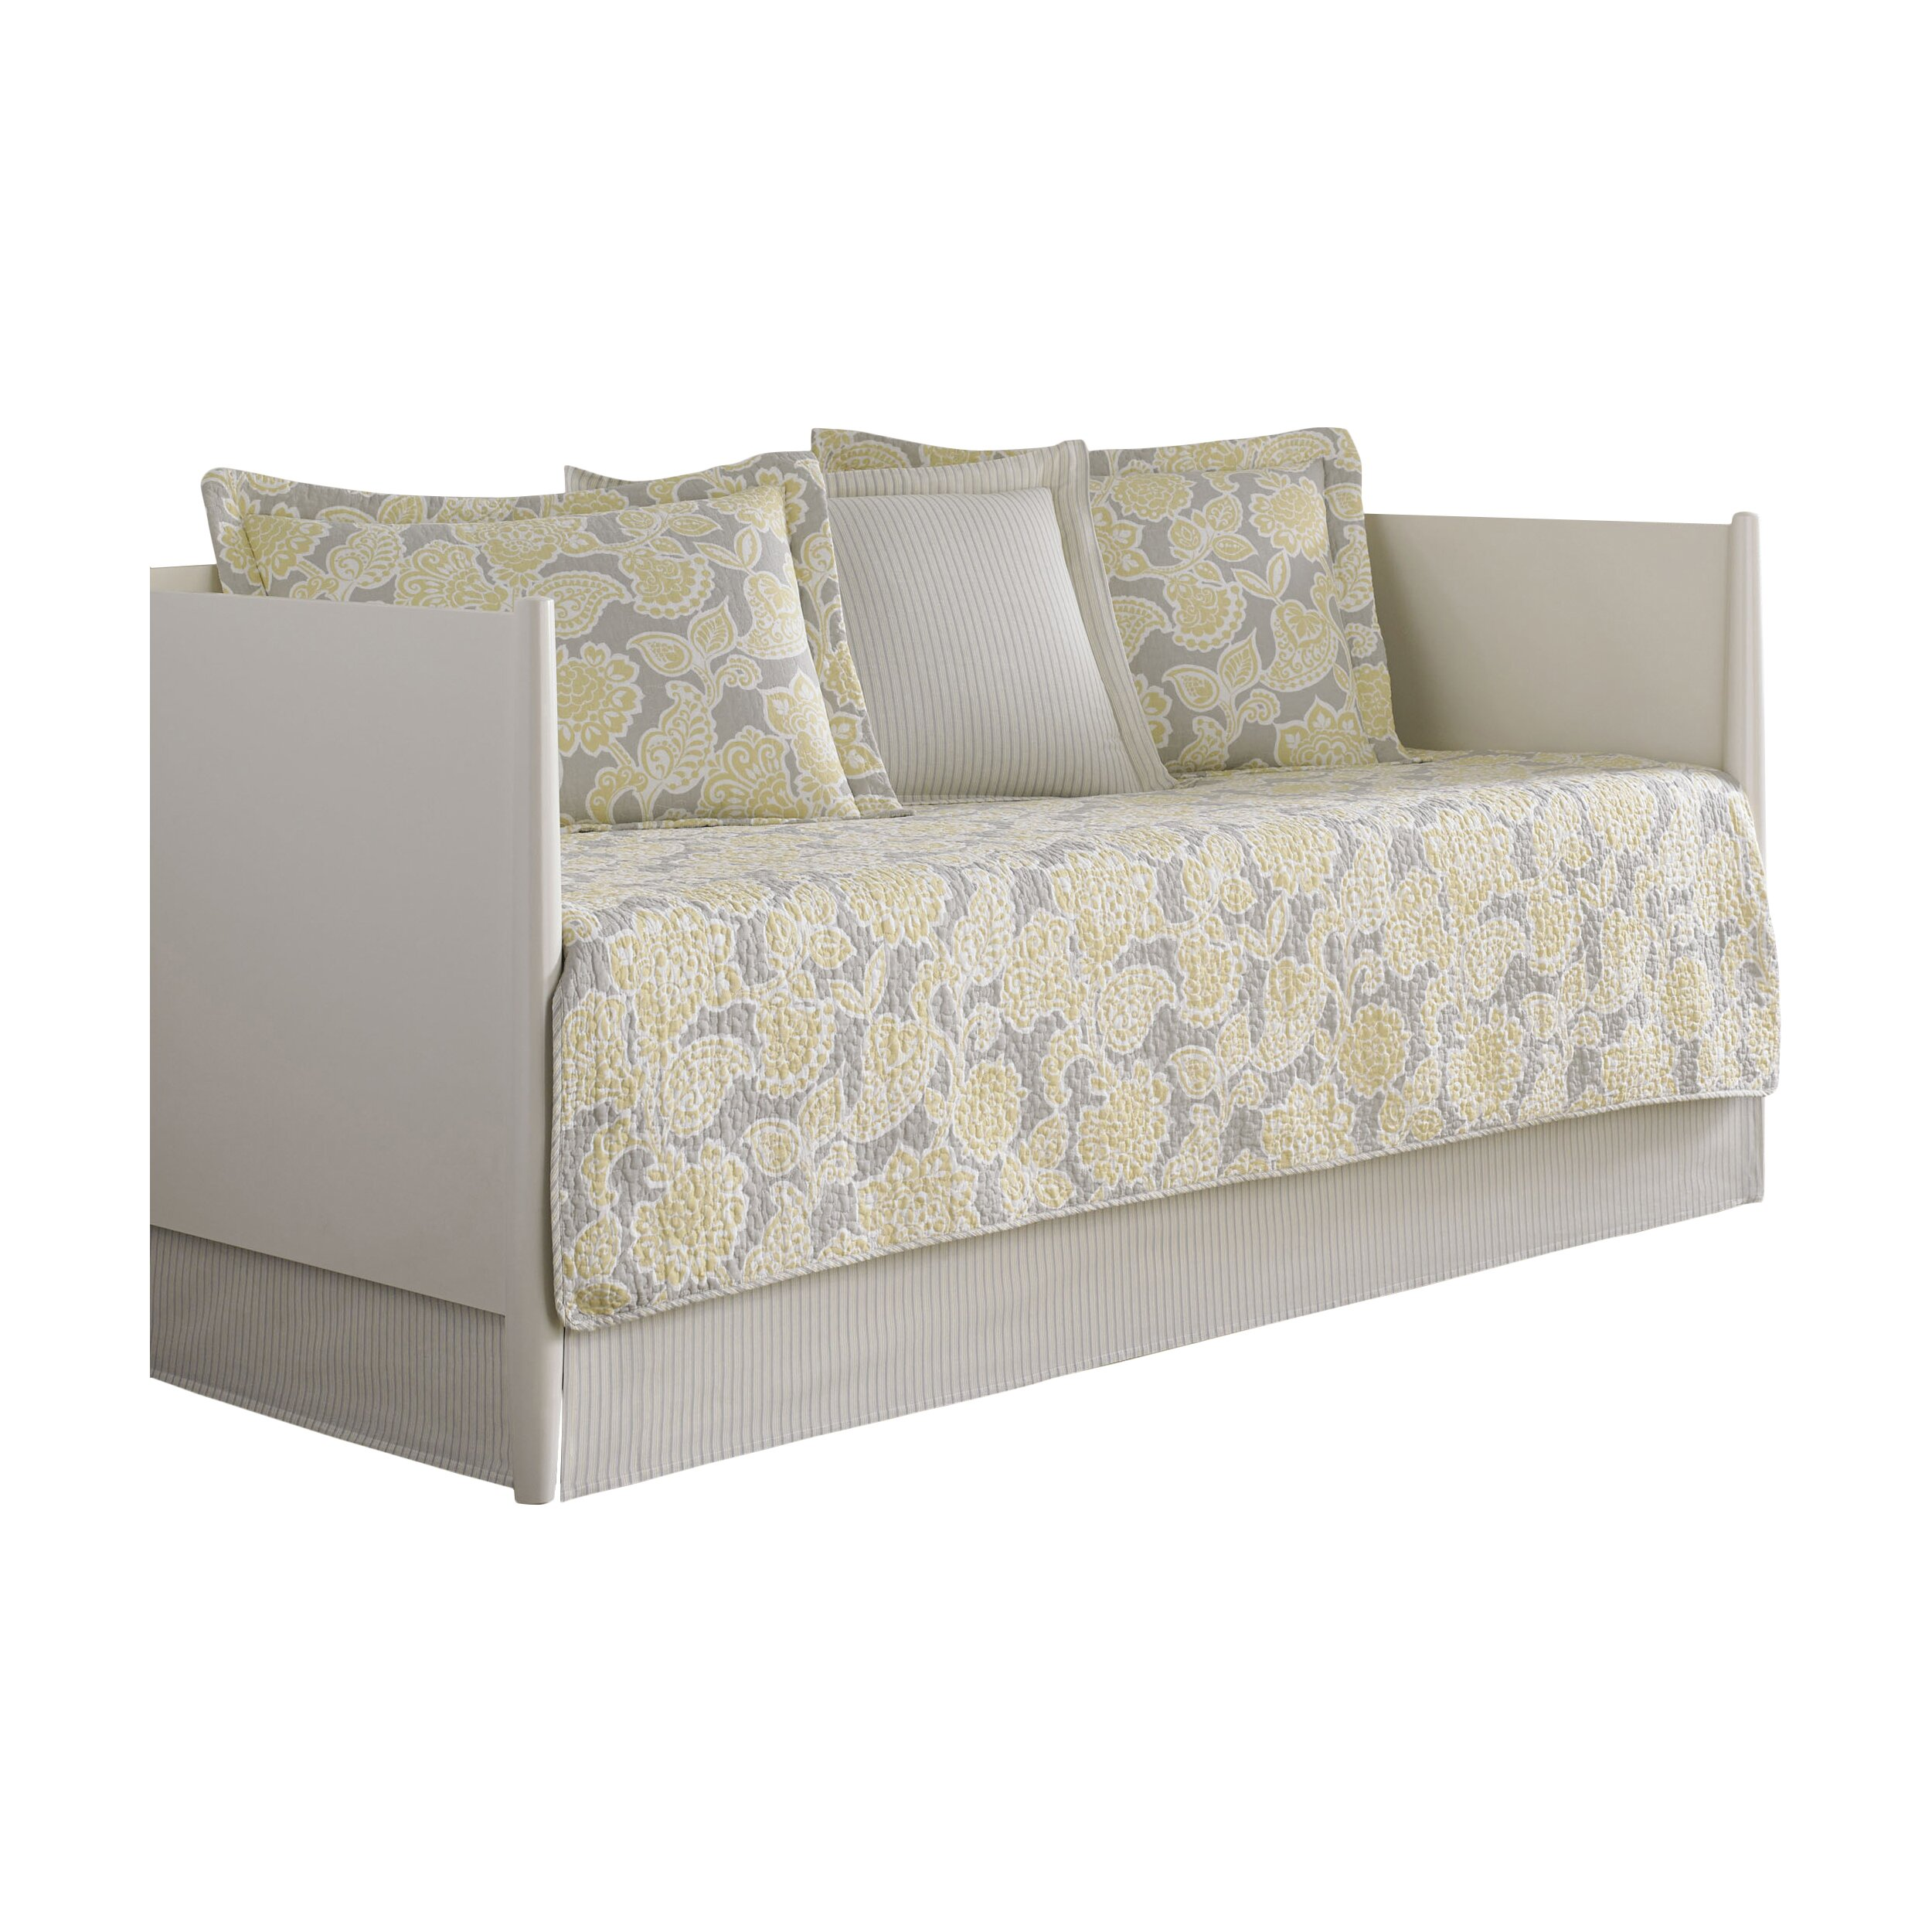 Gray And Yellow Daybed Bedding : Laura ashley home joy piece daybed quilt set in gray